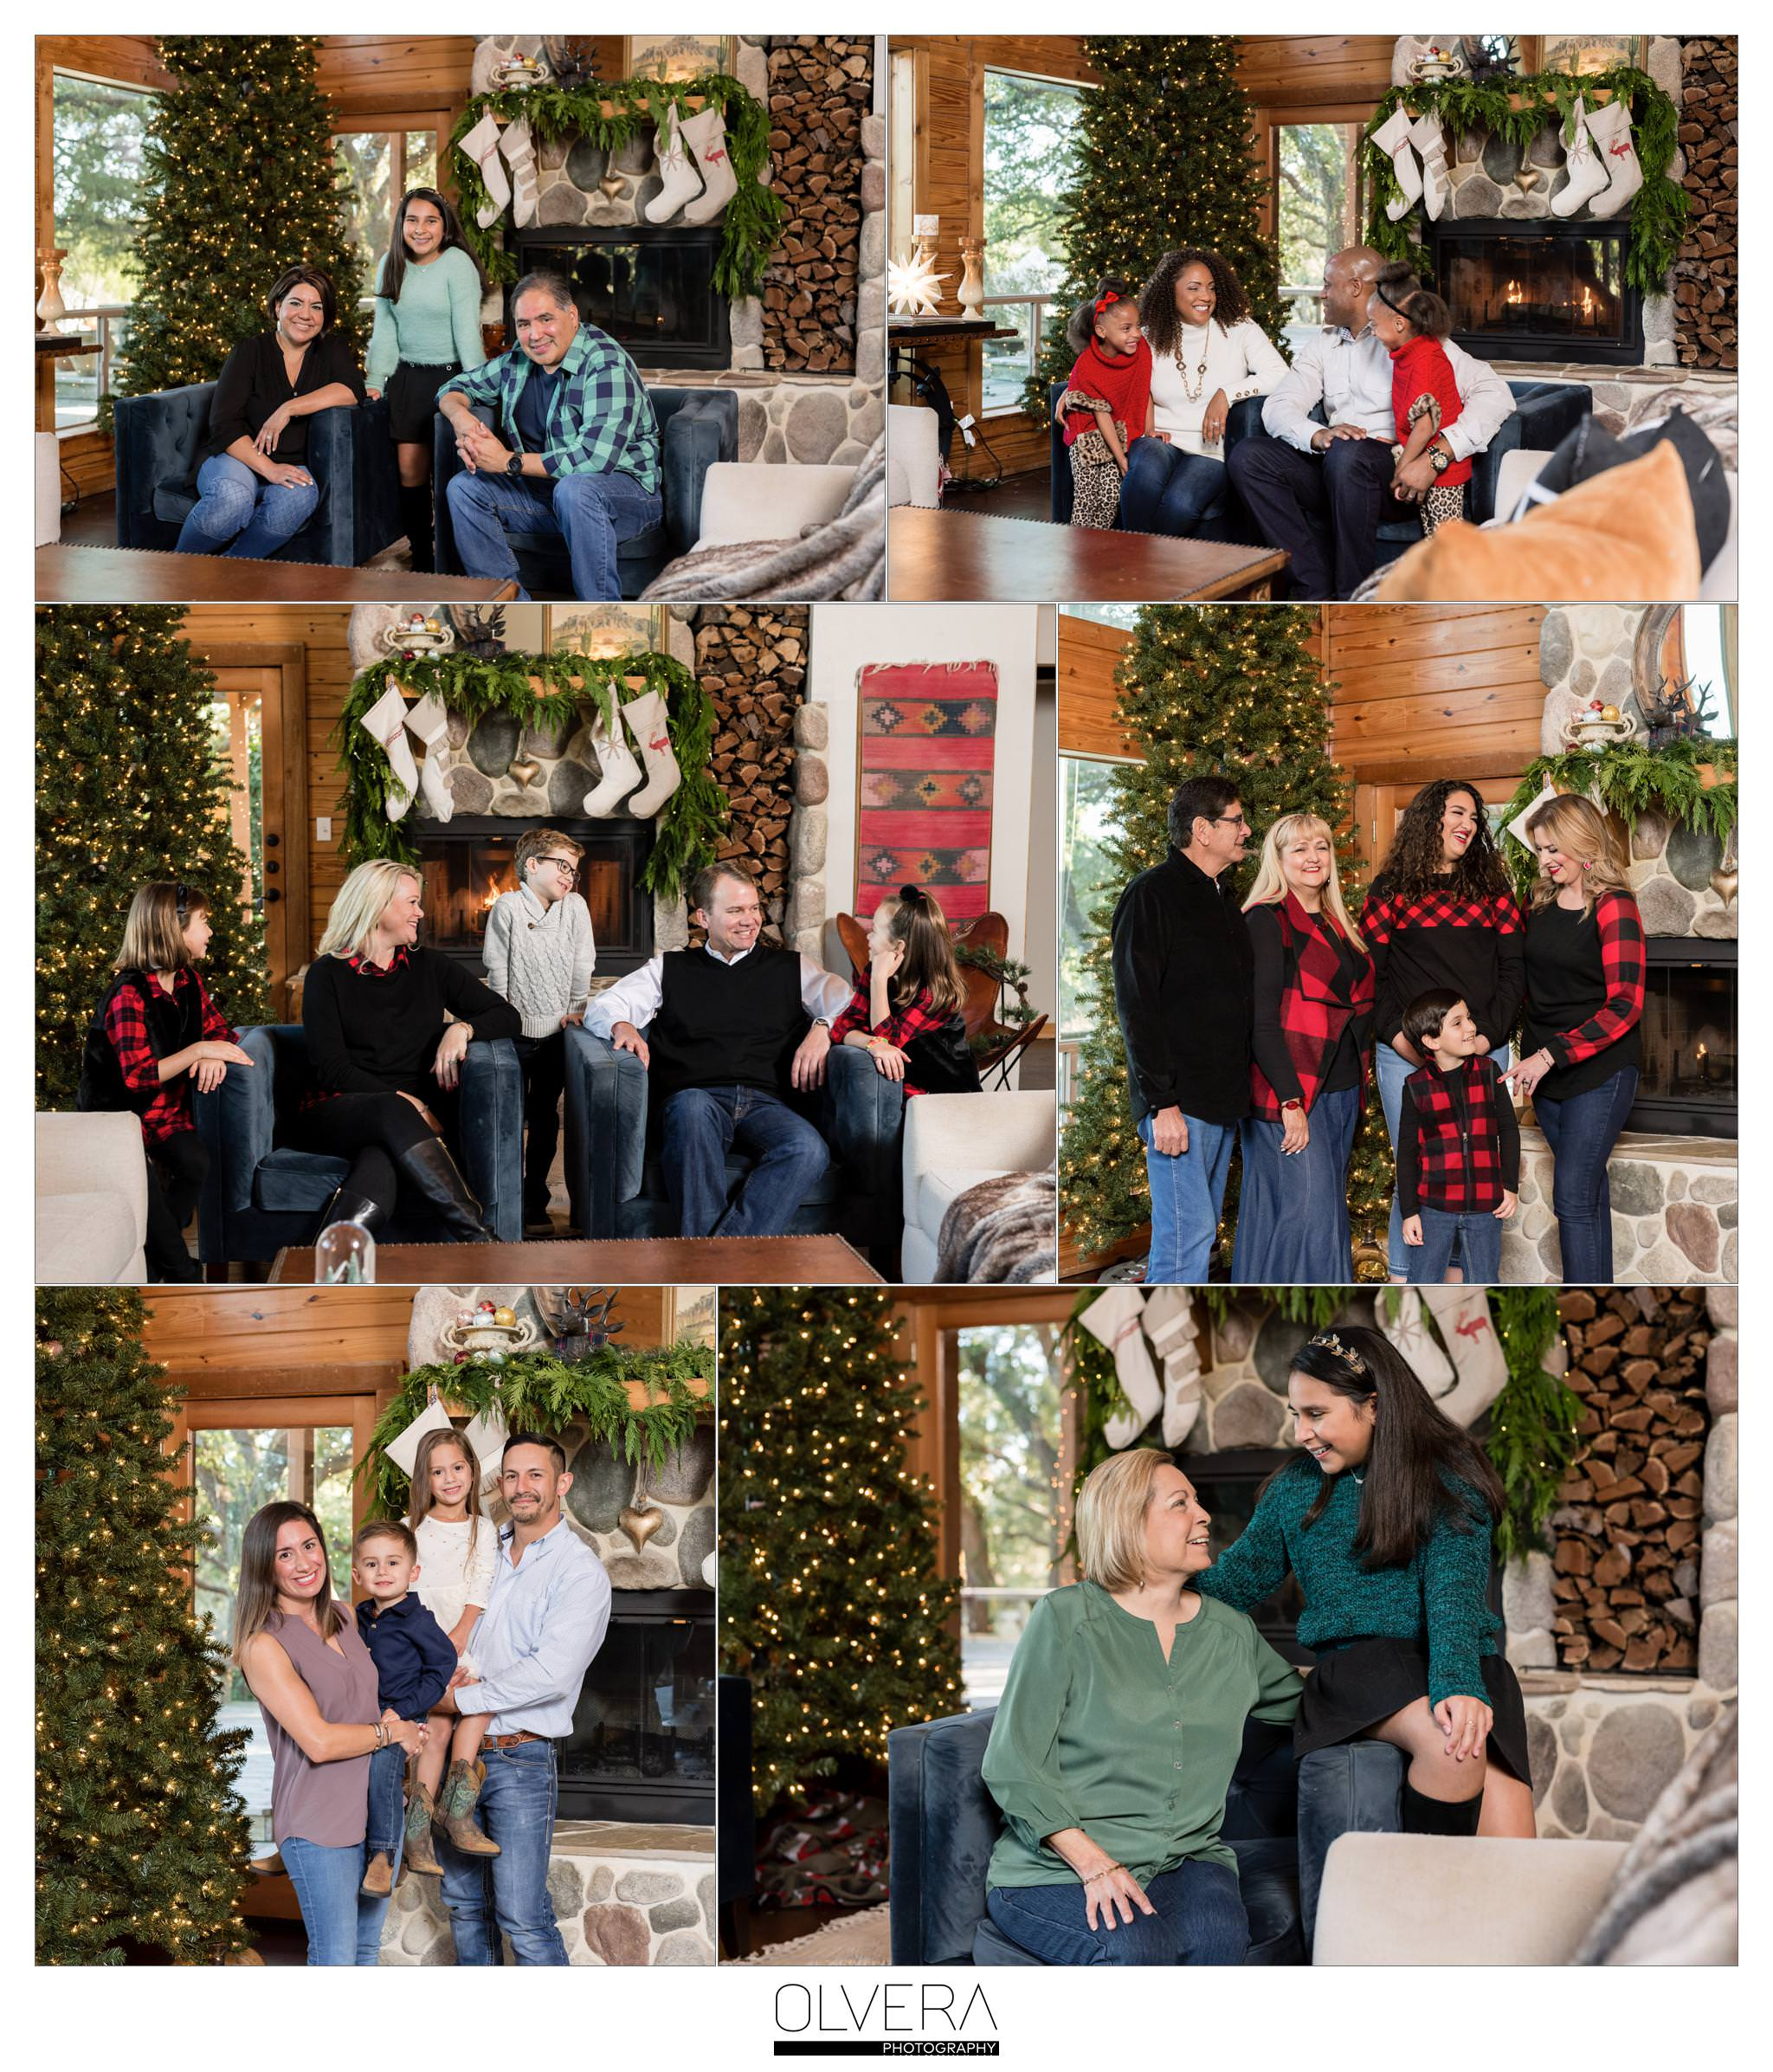 San-Antonio-Mini-Sessions_Christmas-Cabin-Tent_Olvera-Photography-1